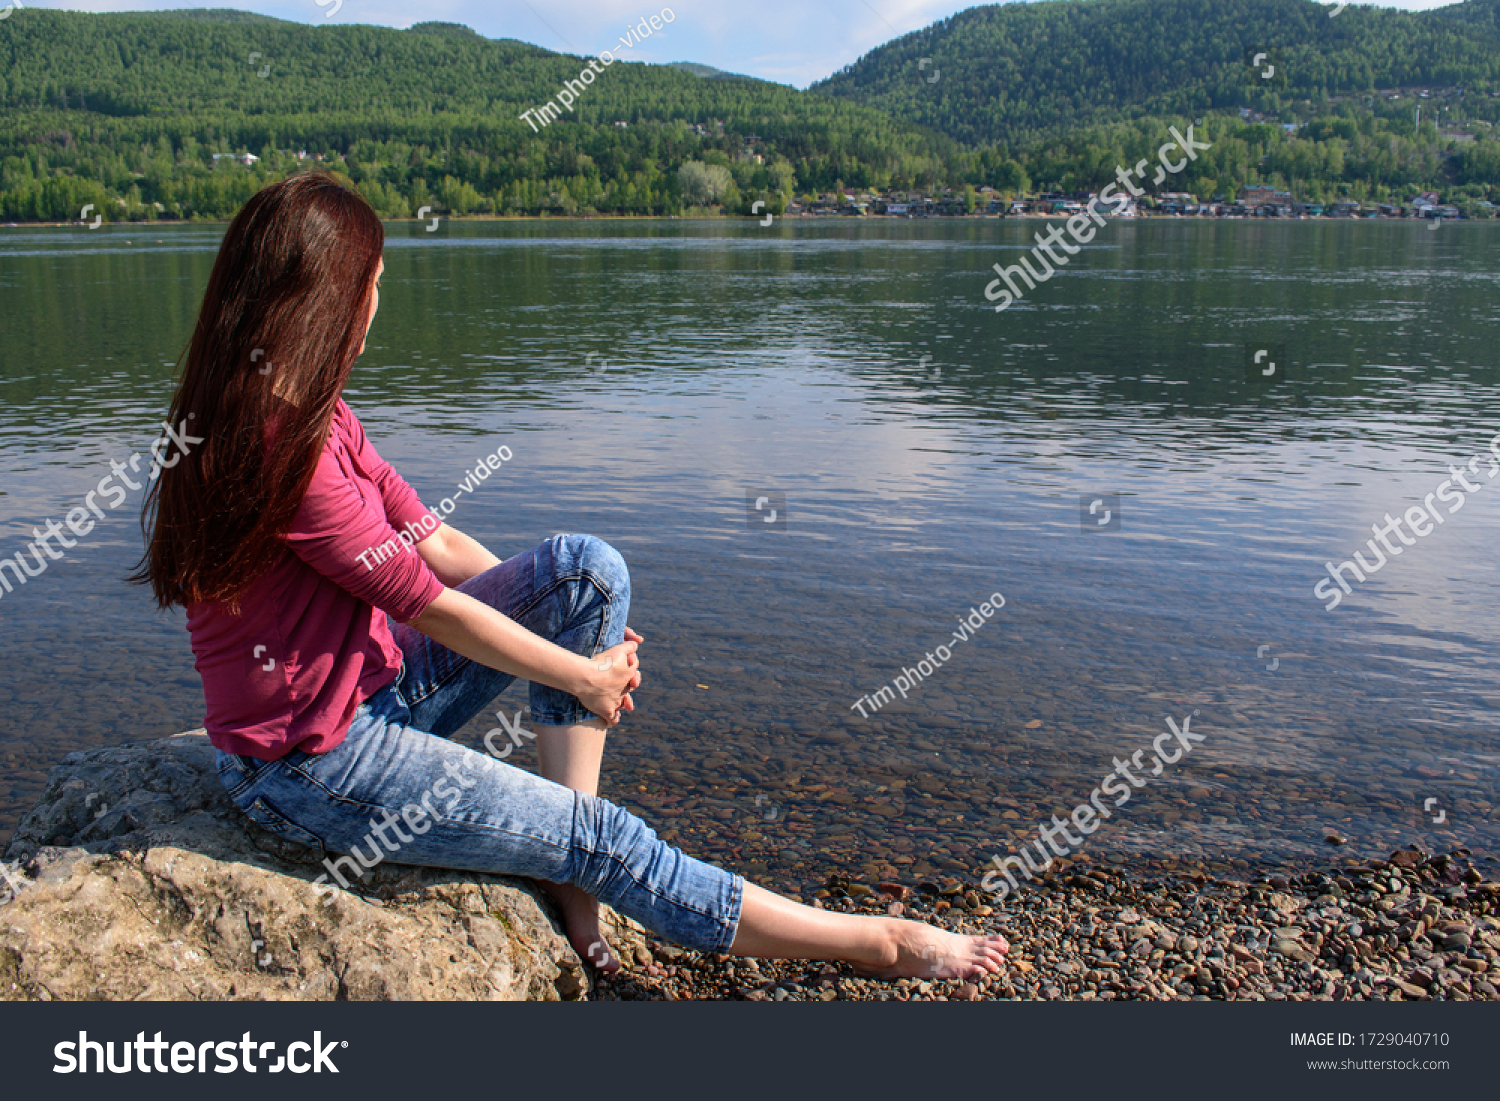 Woman on banks of a large river or lake. Long brown hair. Sits on a stone, profile view, face not visible.  Mountains, sky. Red jacket, jeans on ankle pad. Concept of summer vacation, thoughtfulness.